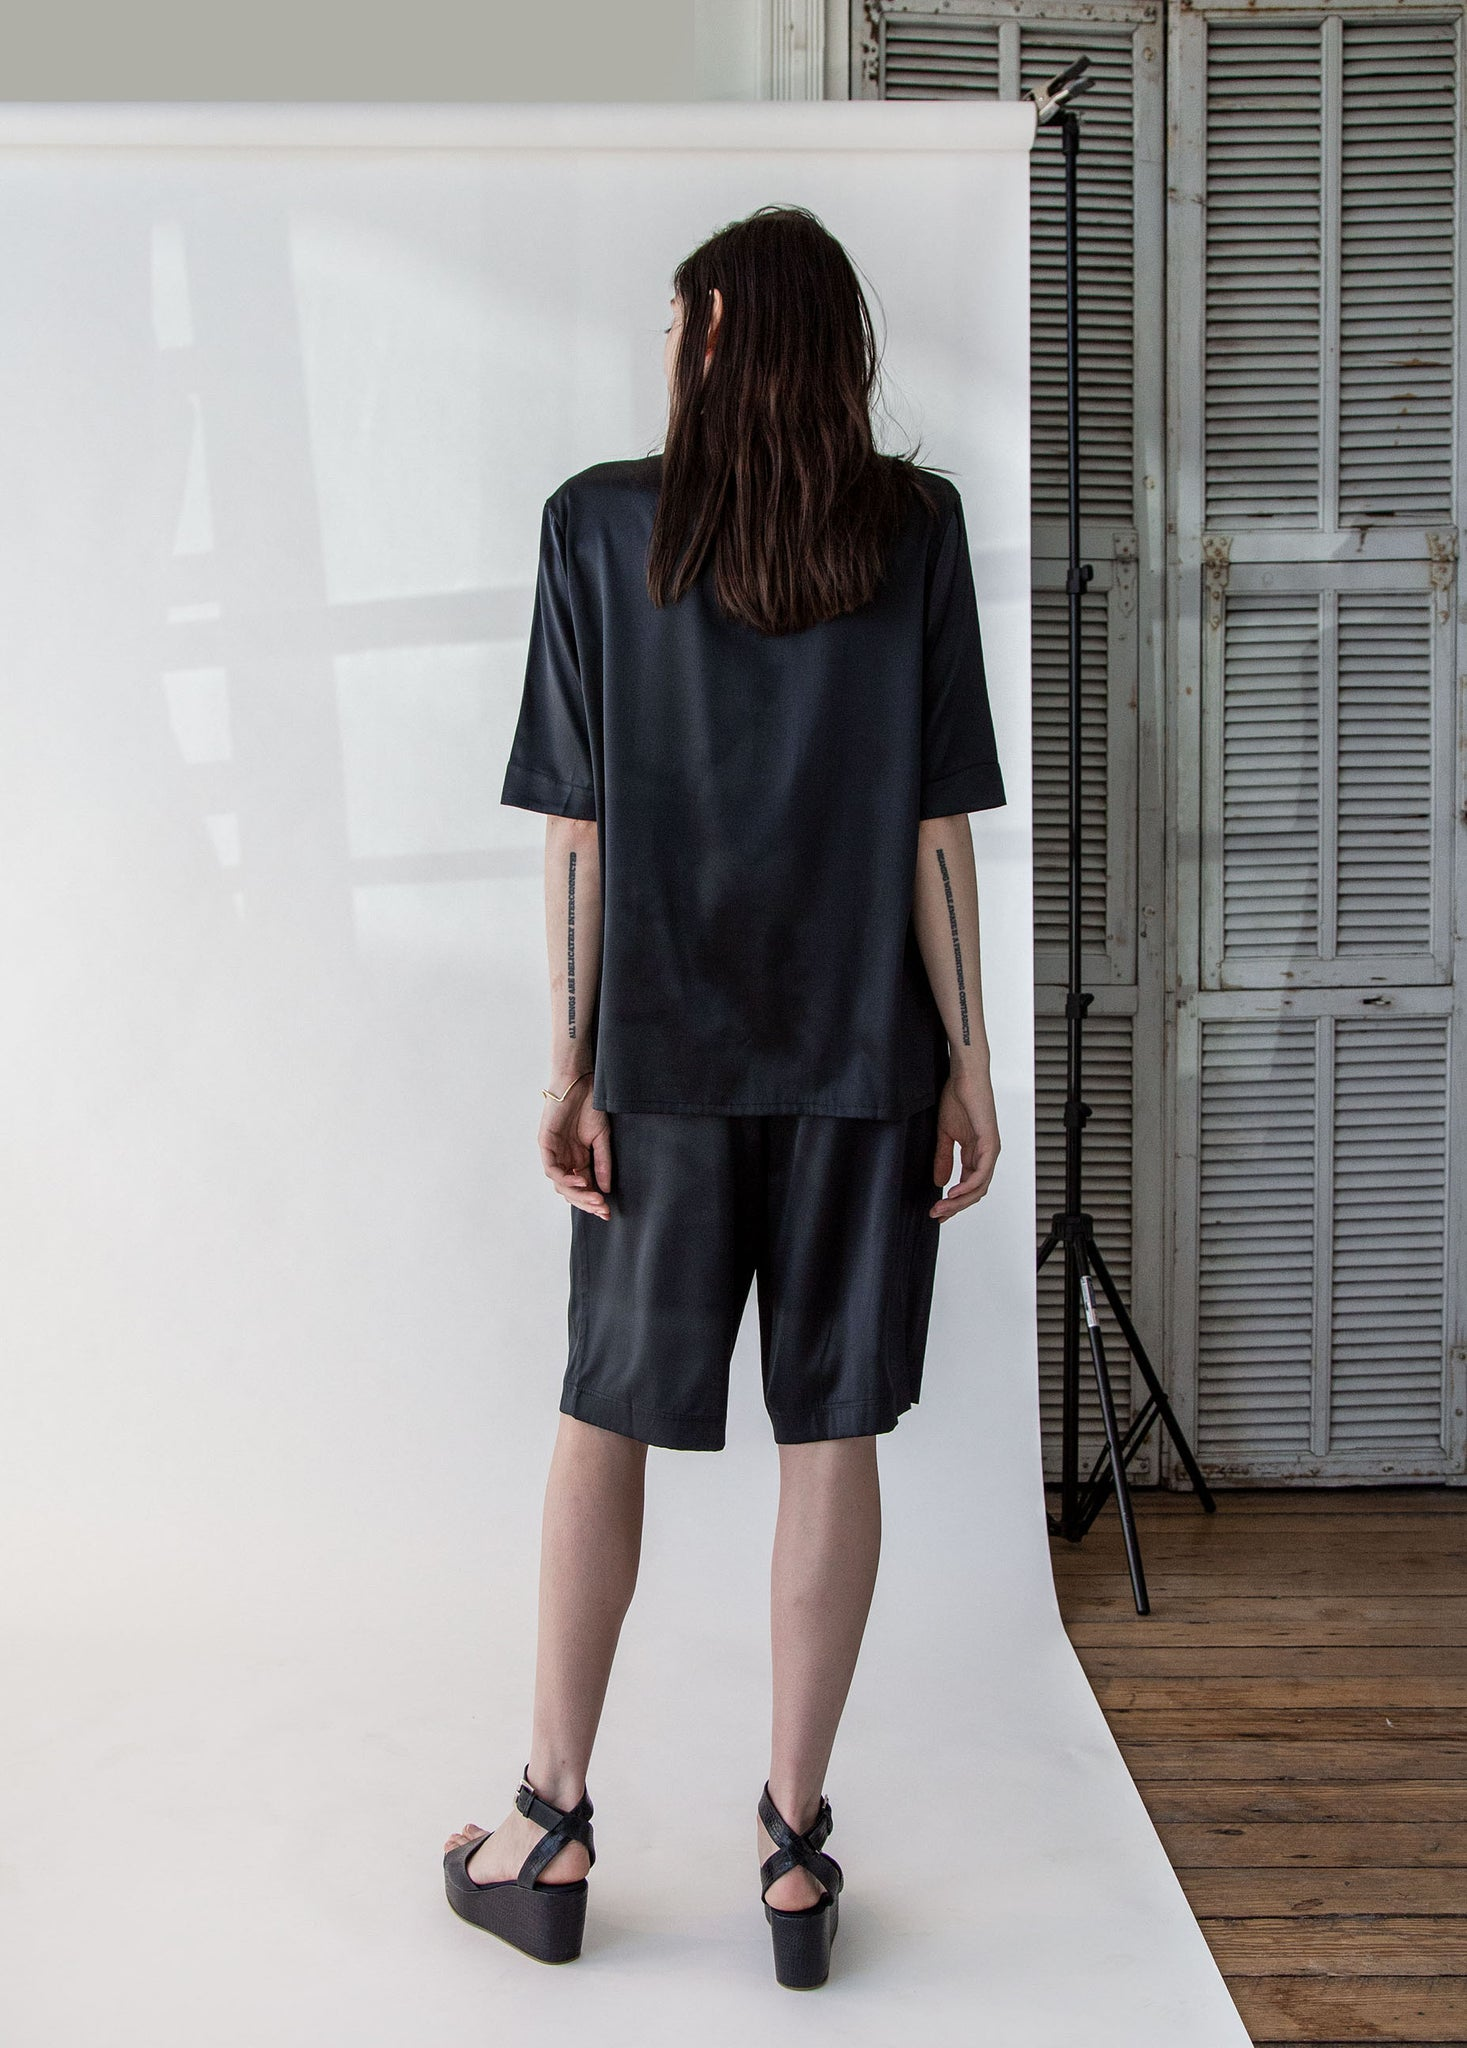 Short Sleeve PJ Top in Black